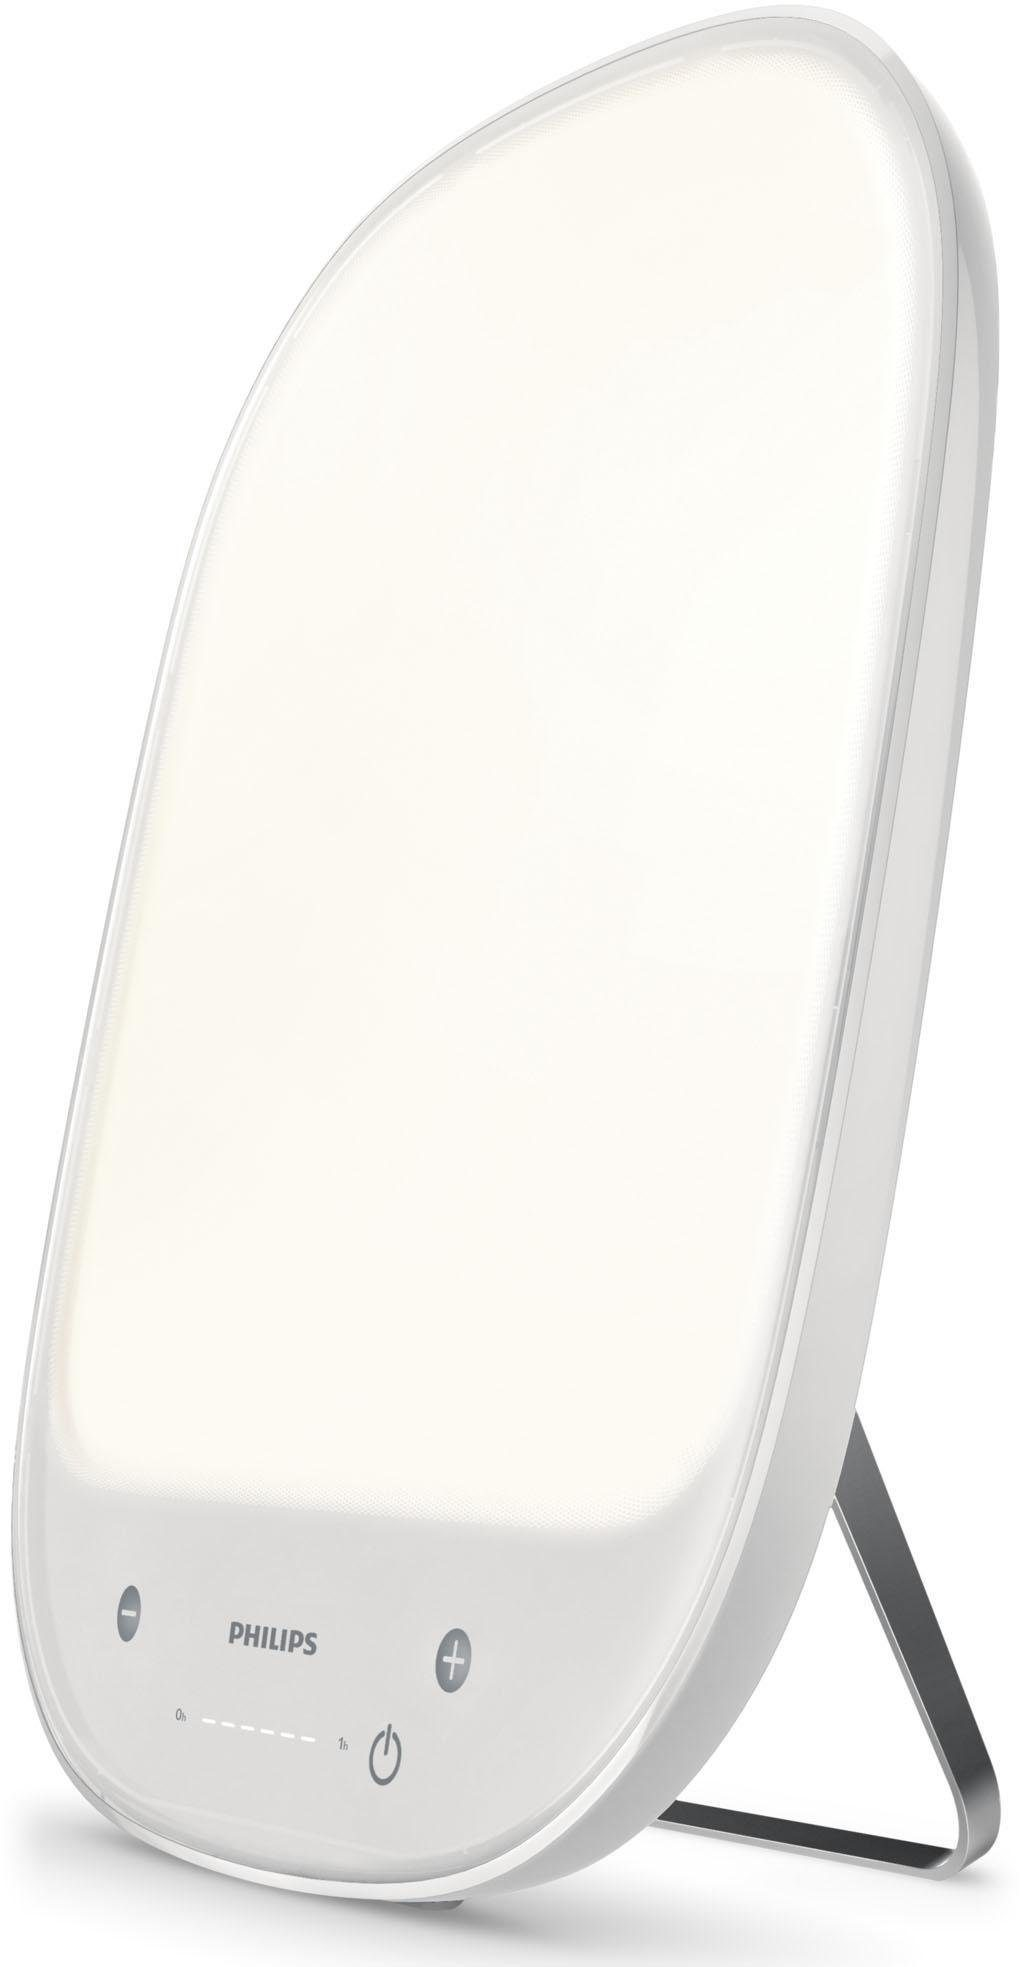 Philips, Tageslichtlampe HF3419/02 EnergyUp, White